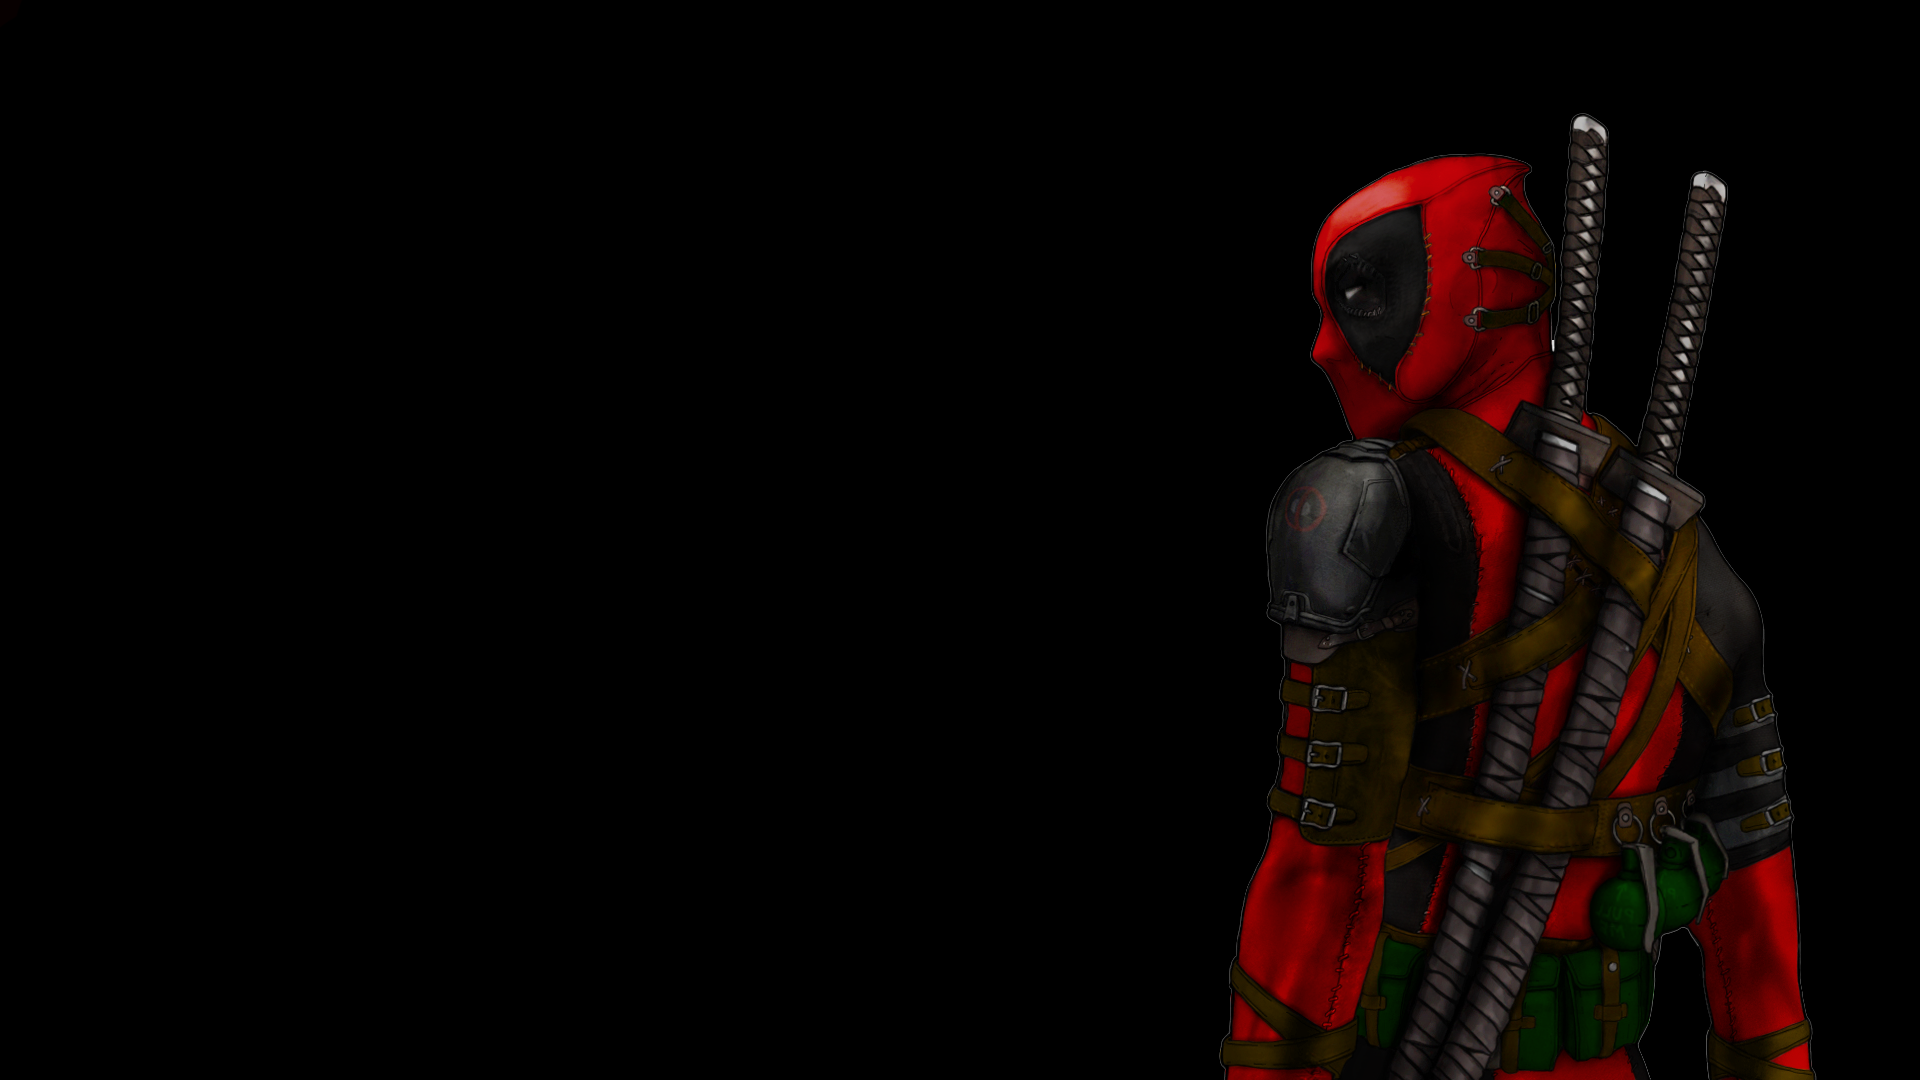 deadpool wallpaper iphone 6